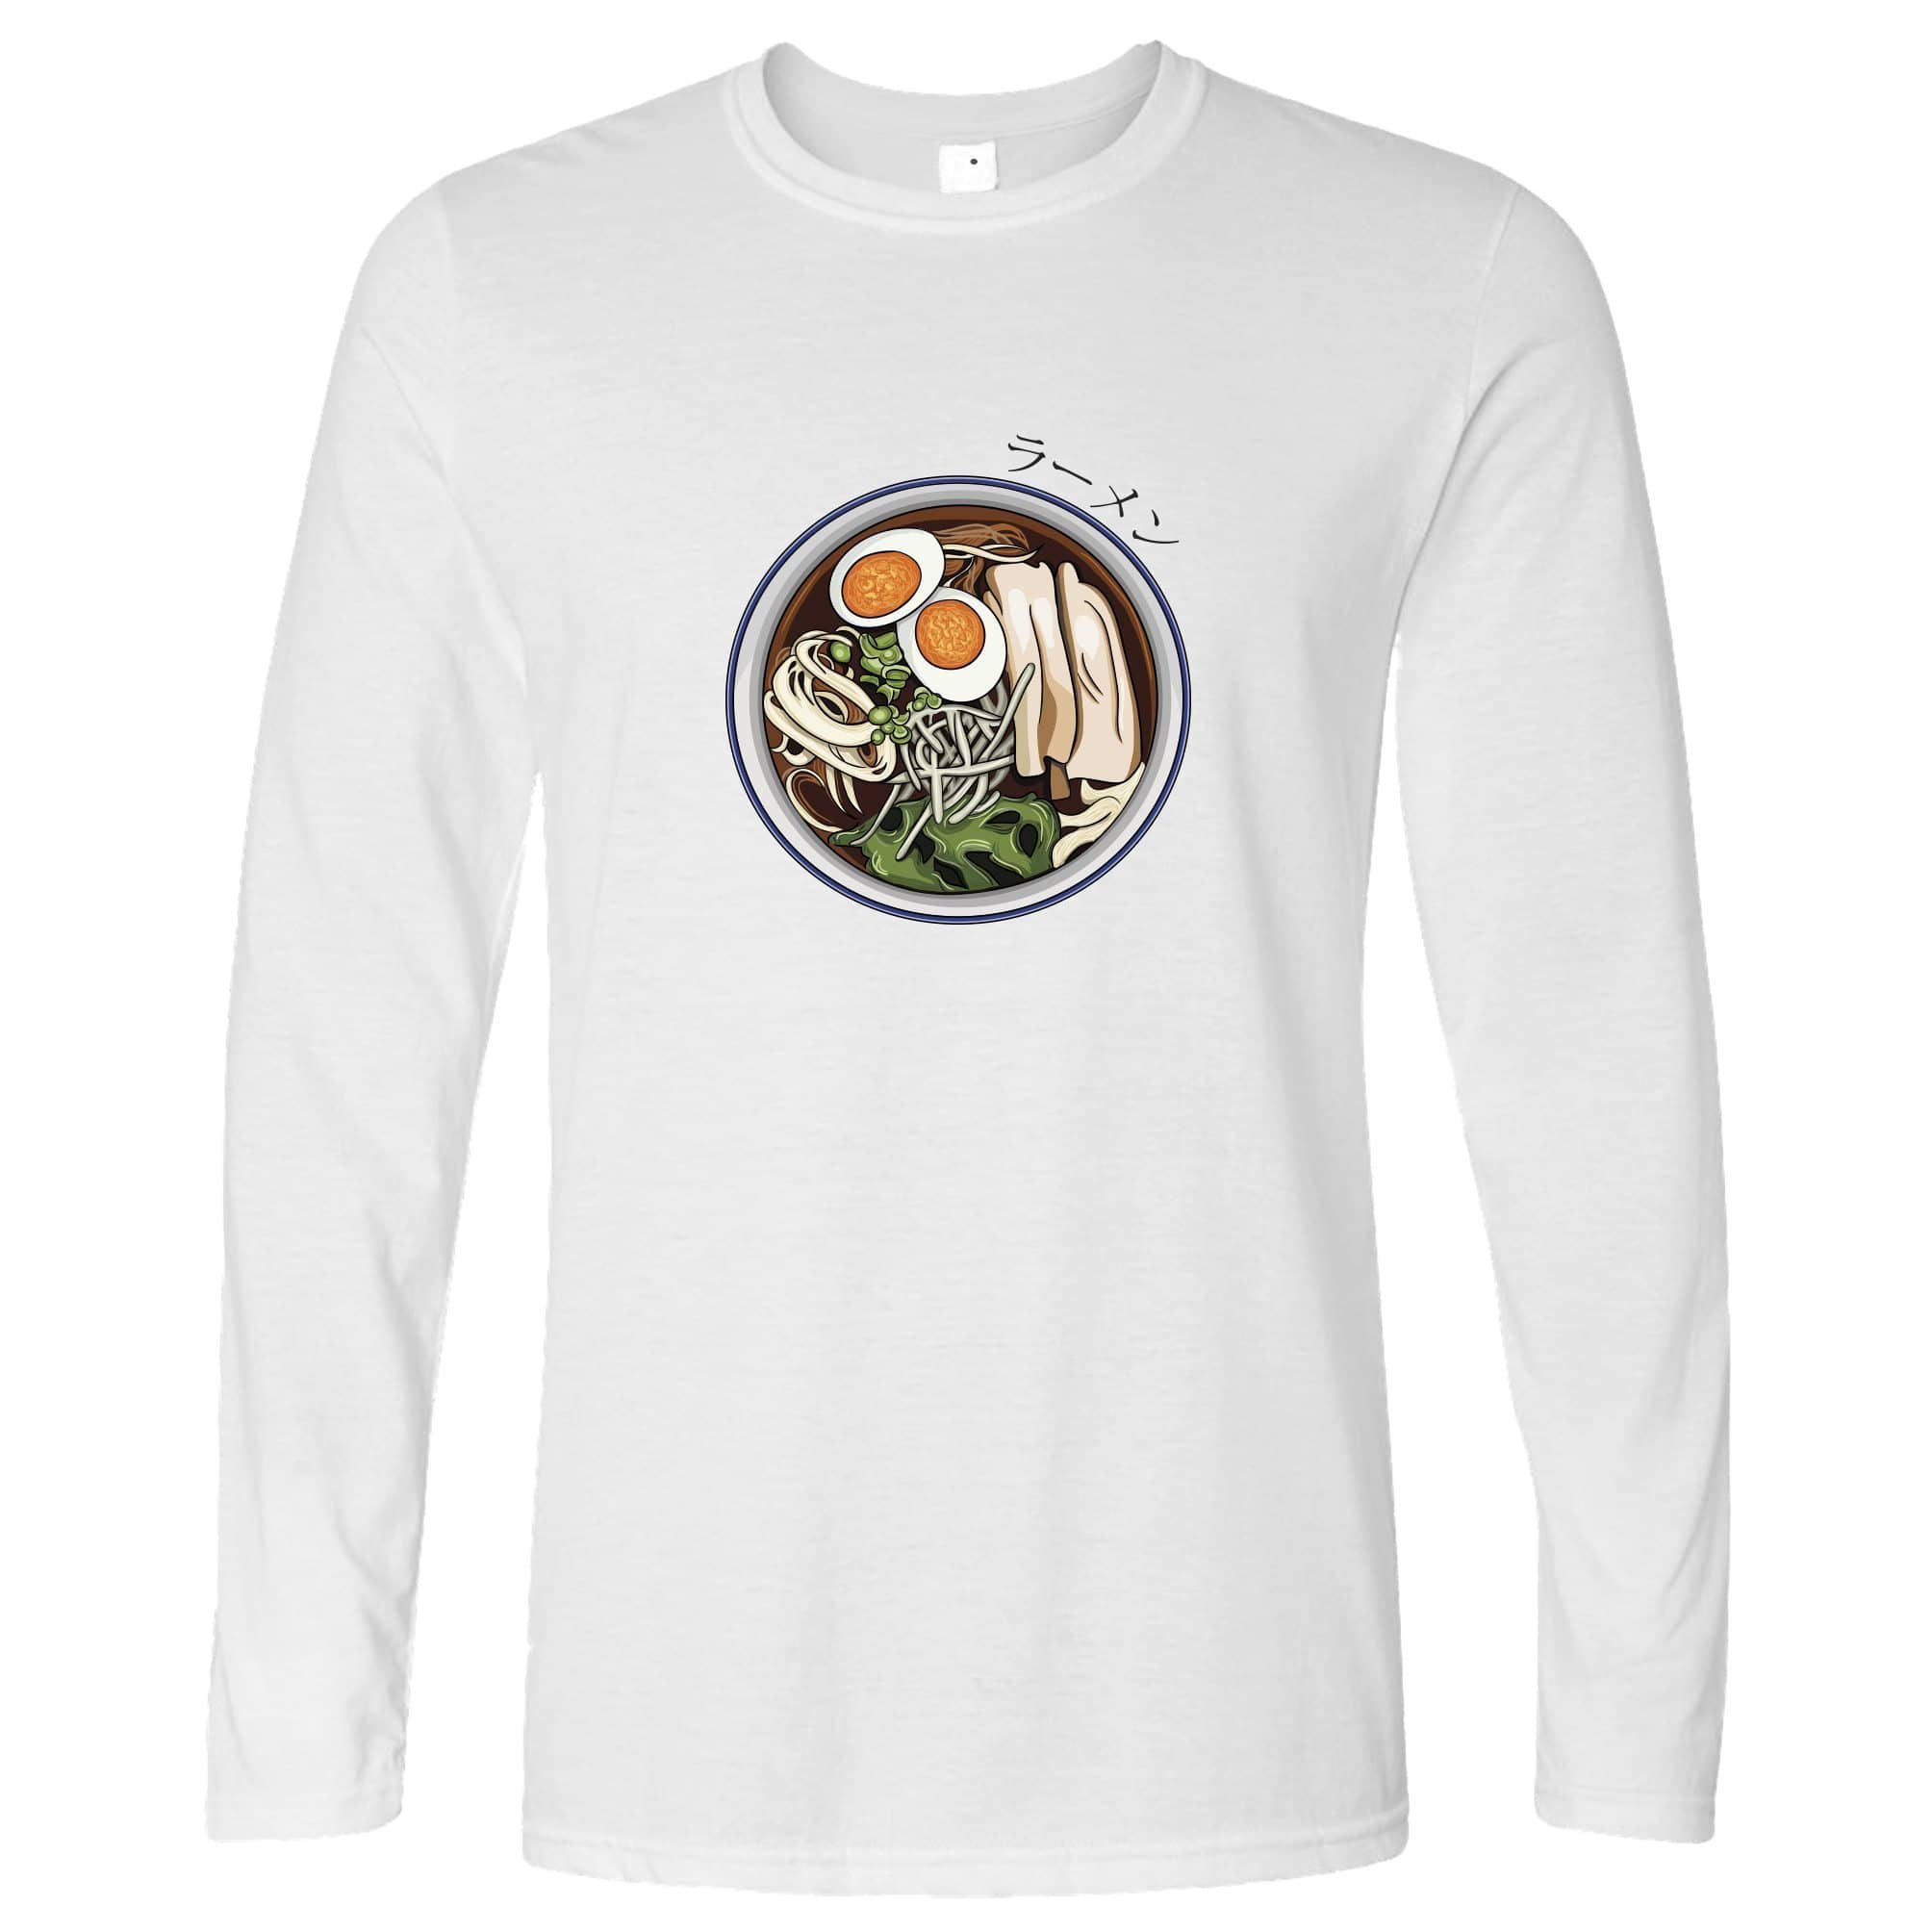 Ethnic Food Long Sleeve Ramen Noodles And Japanese Text T-Shirt